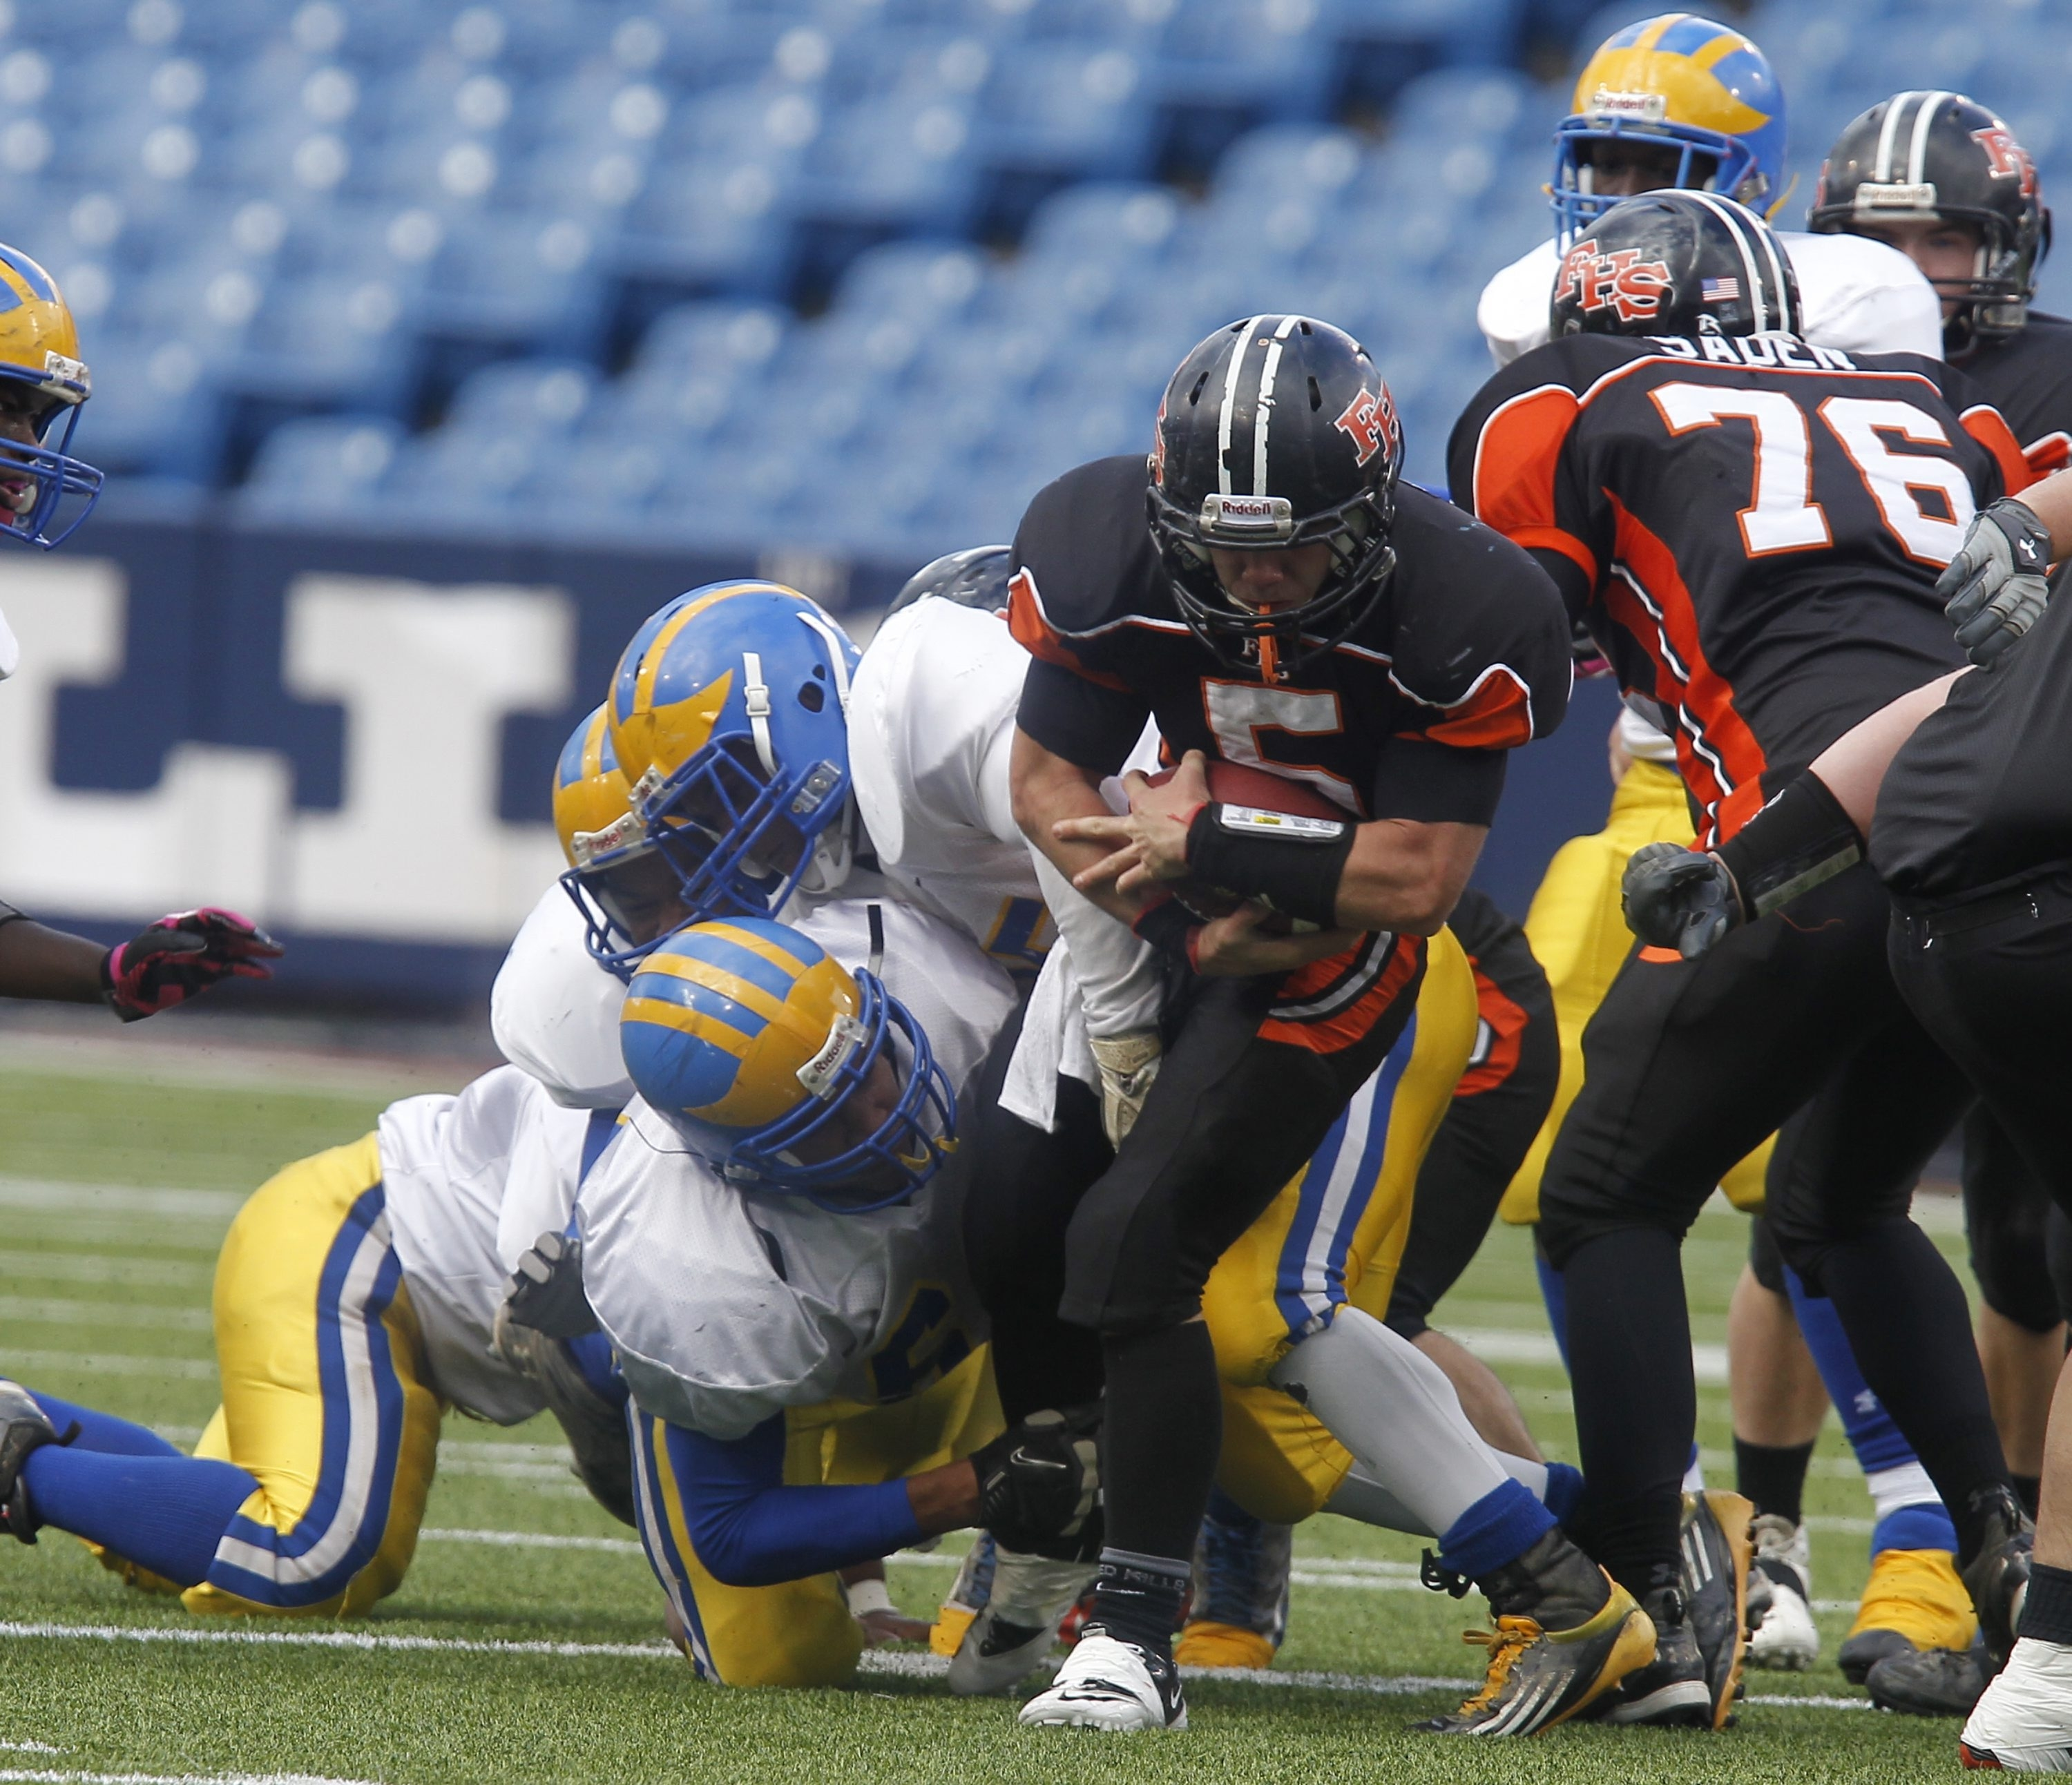 Cody Smith (5) and Fredonia will try to return to The Ralph; the Hillbillies lost in last year's C final.